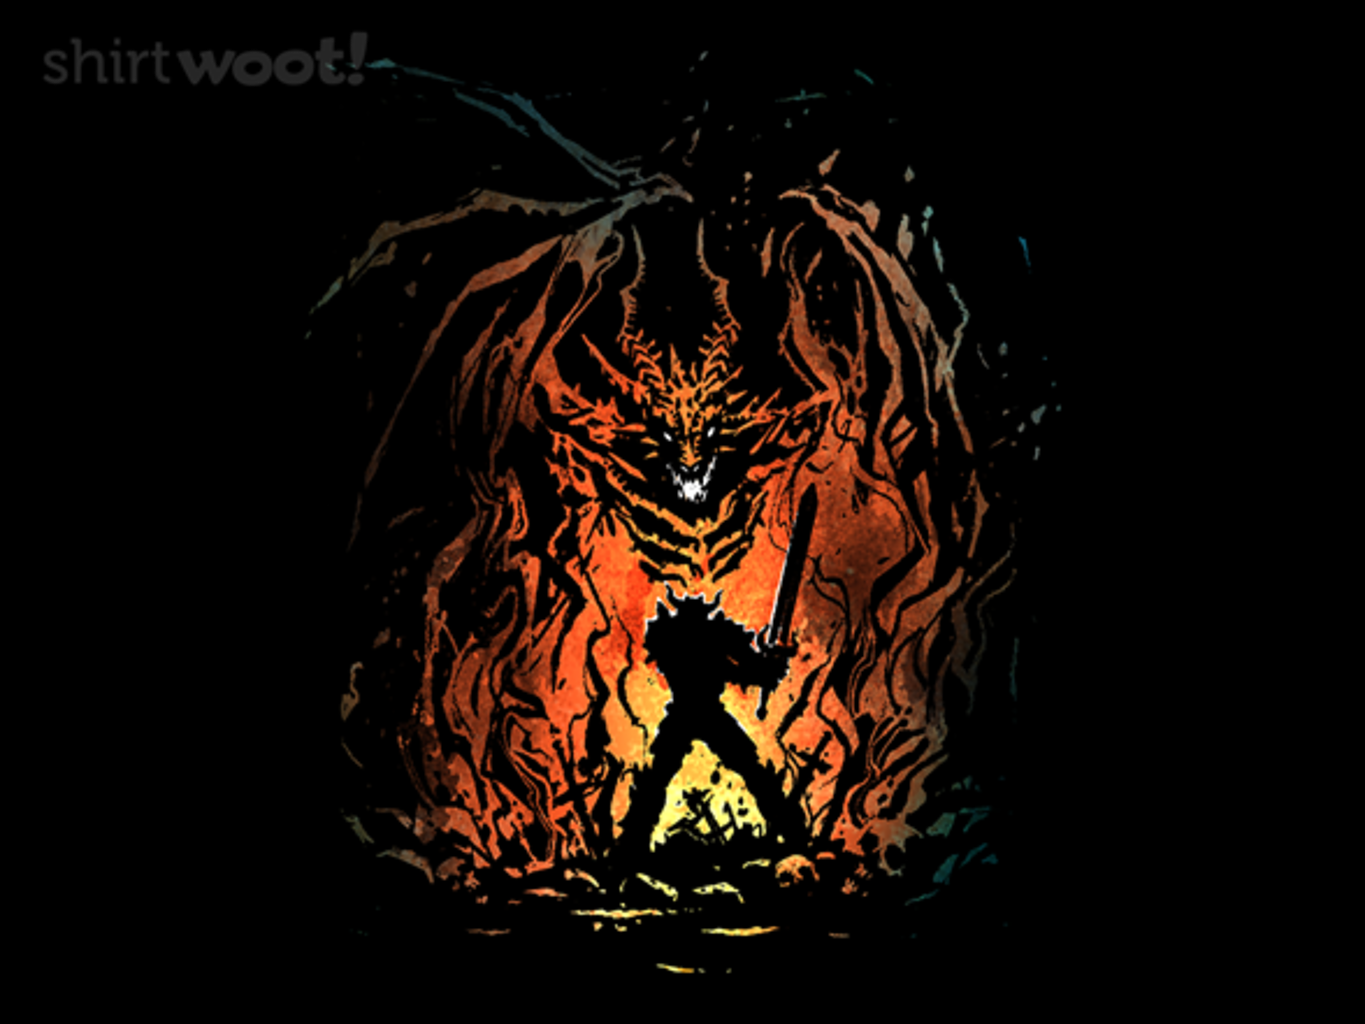 Woot!: Into The Fire